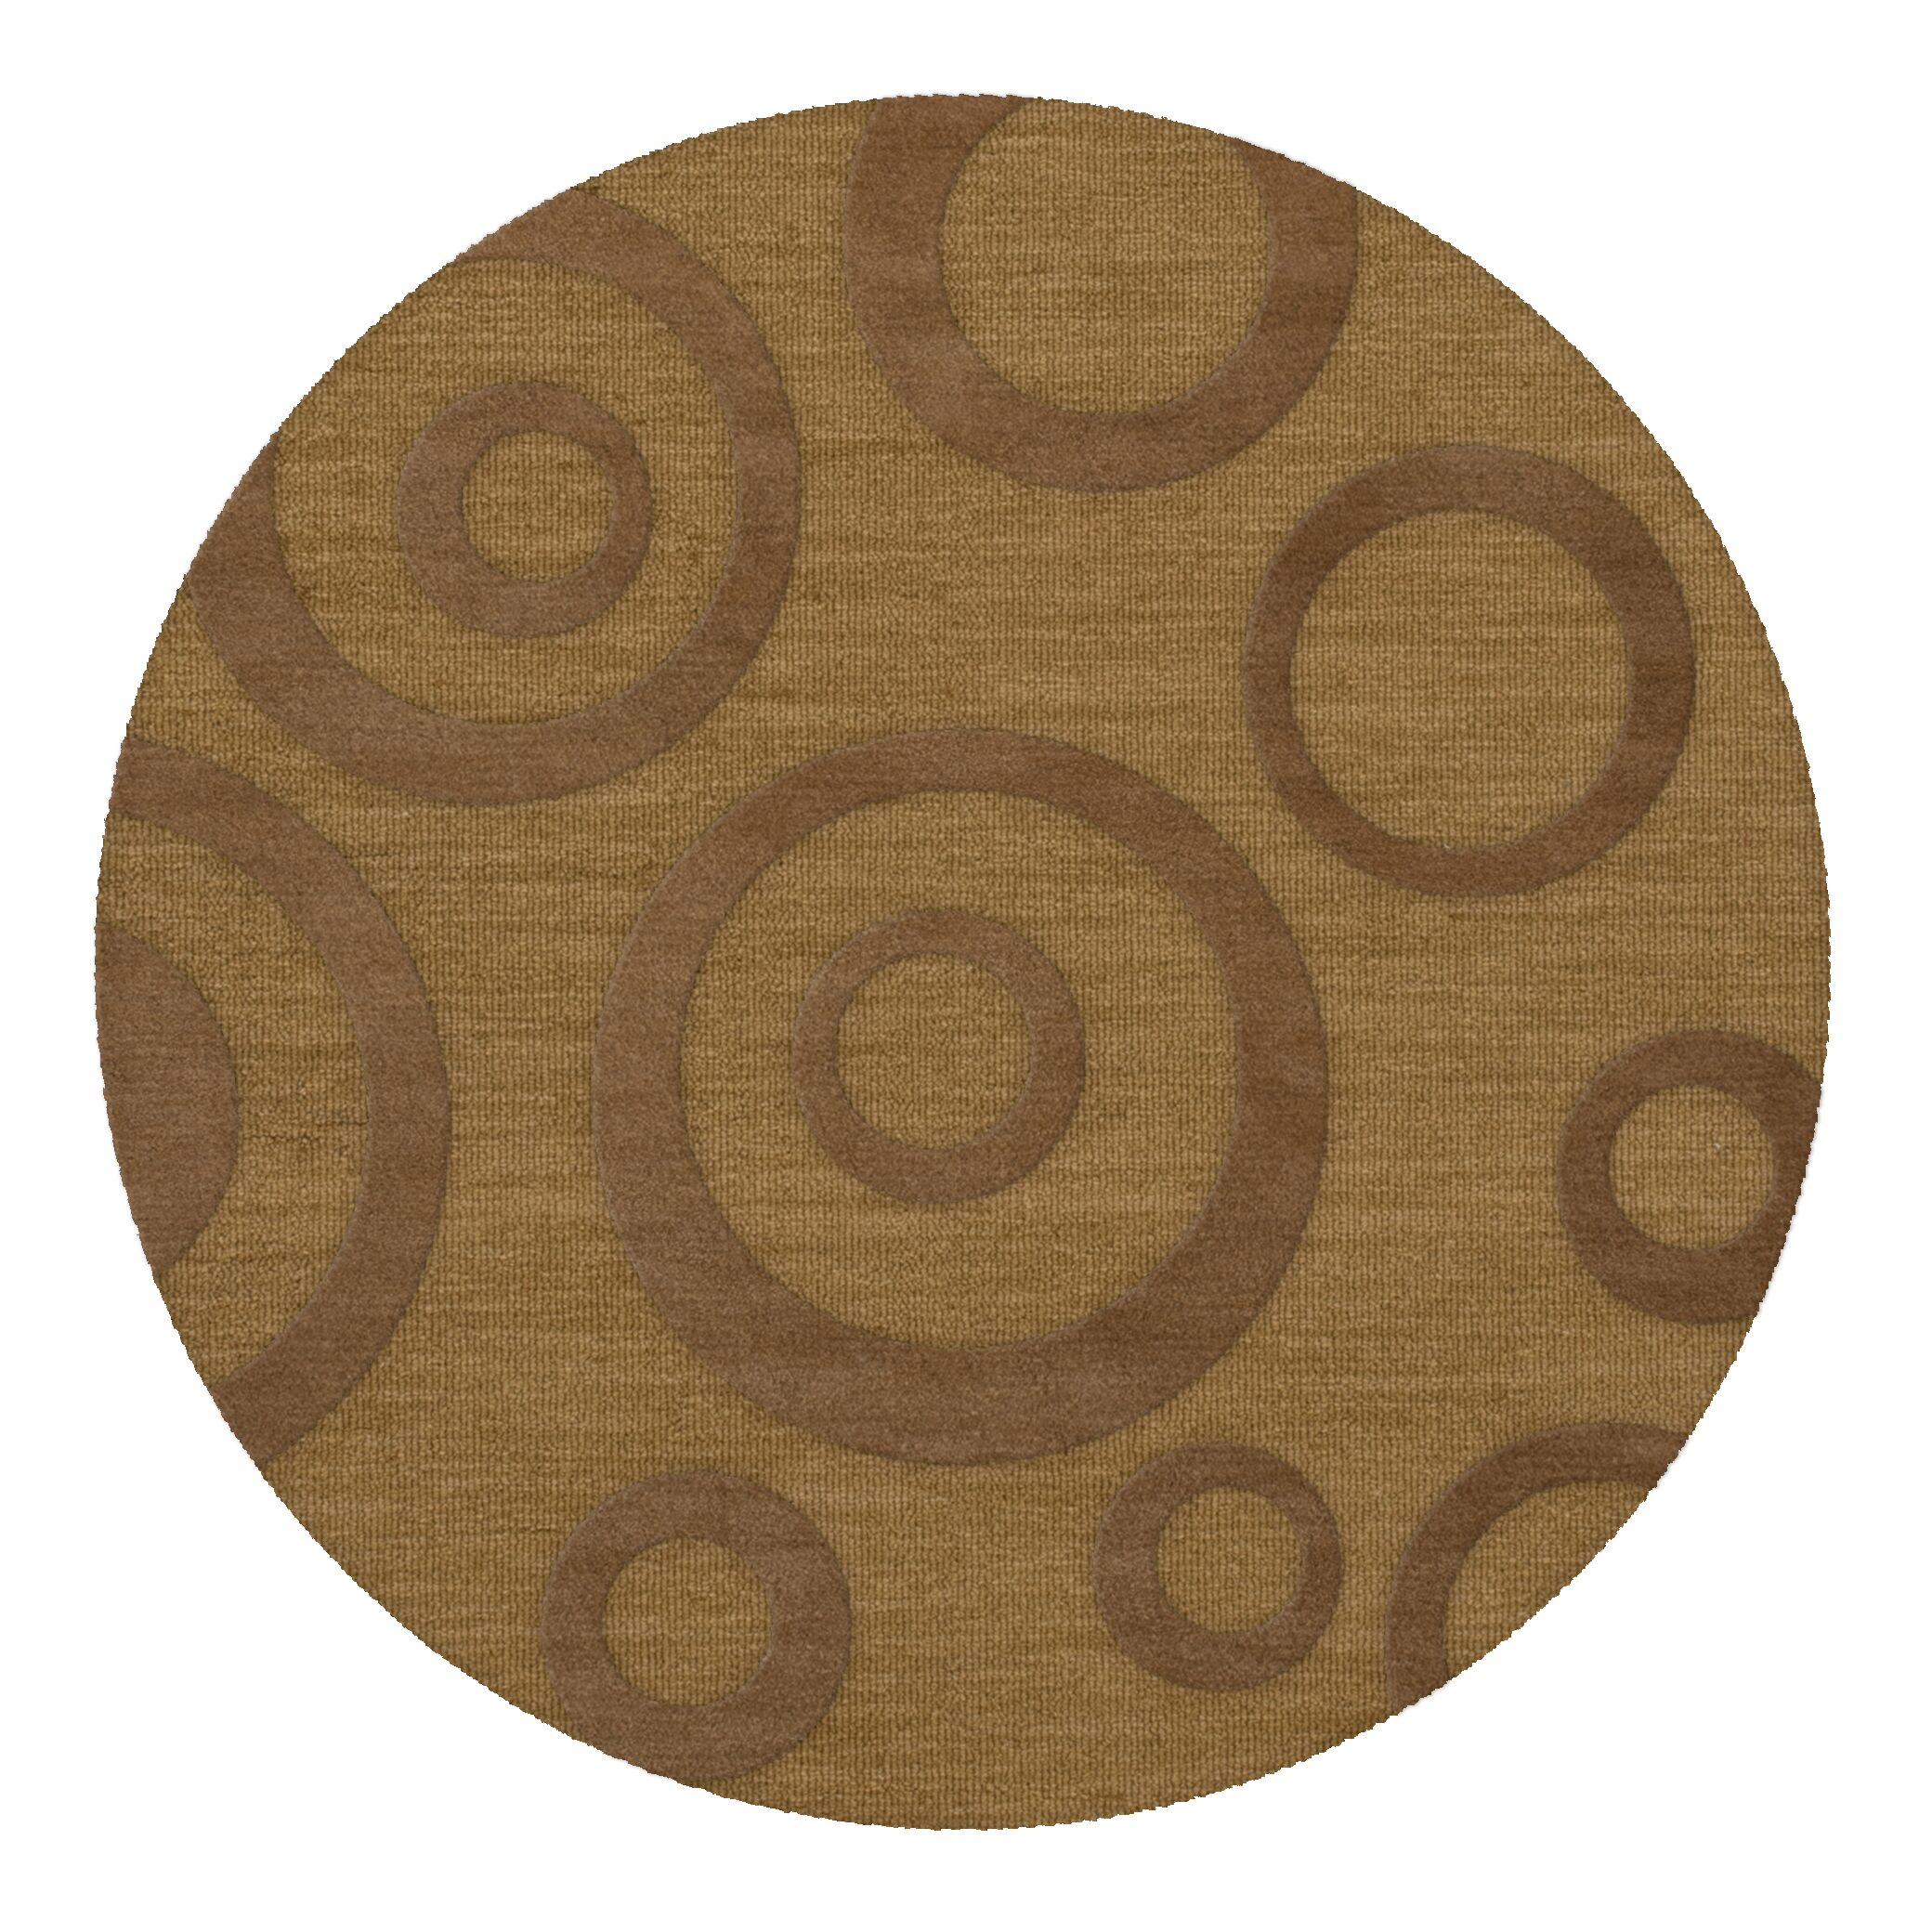 Dover Tufted Wool Gold Dust Area Rug Rug Size: Round 8'